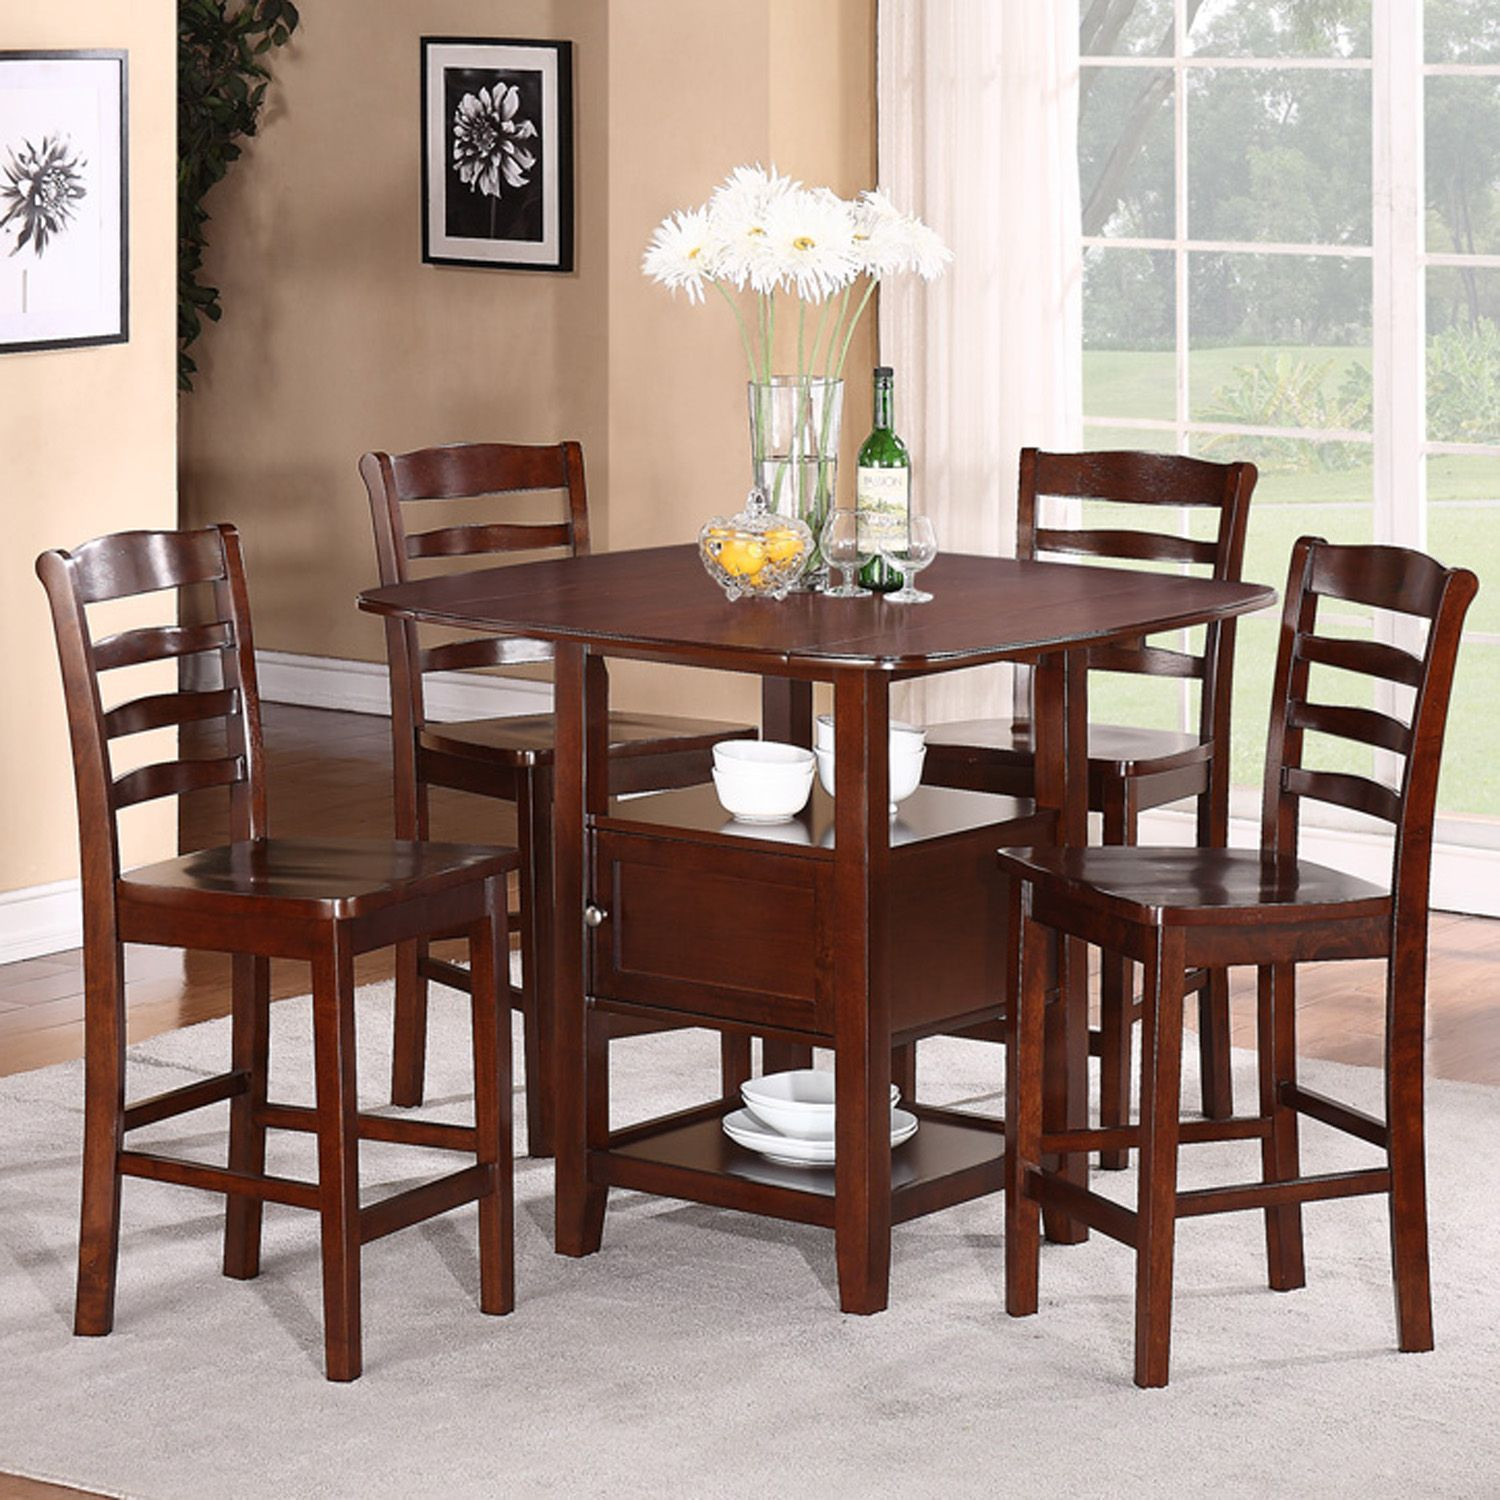 Best ideas about Dining Table Sets . Save or Pin 5pc Dining Set with Storage Now.